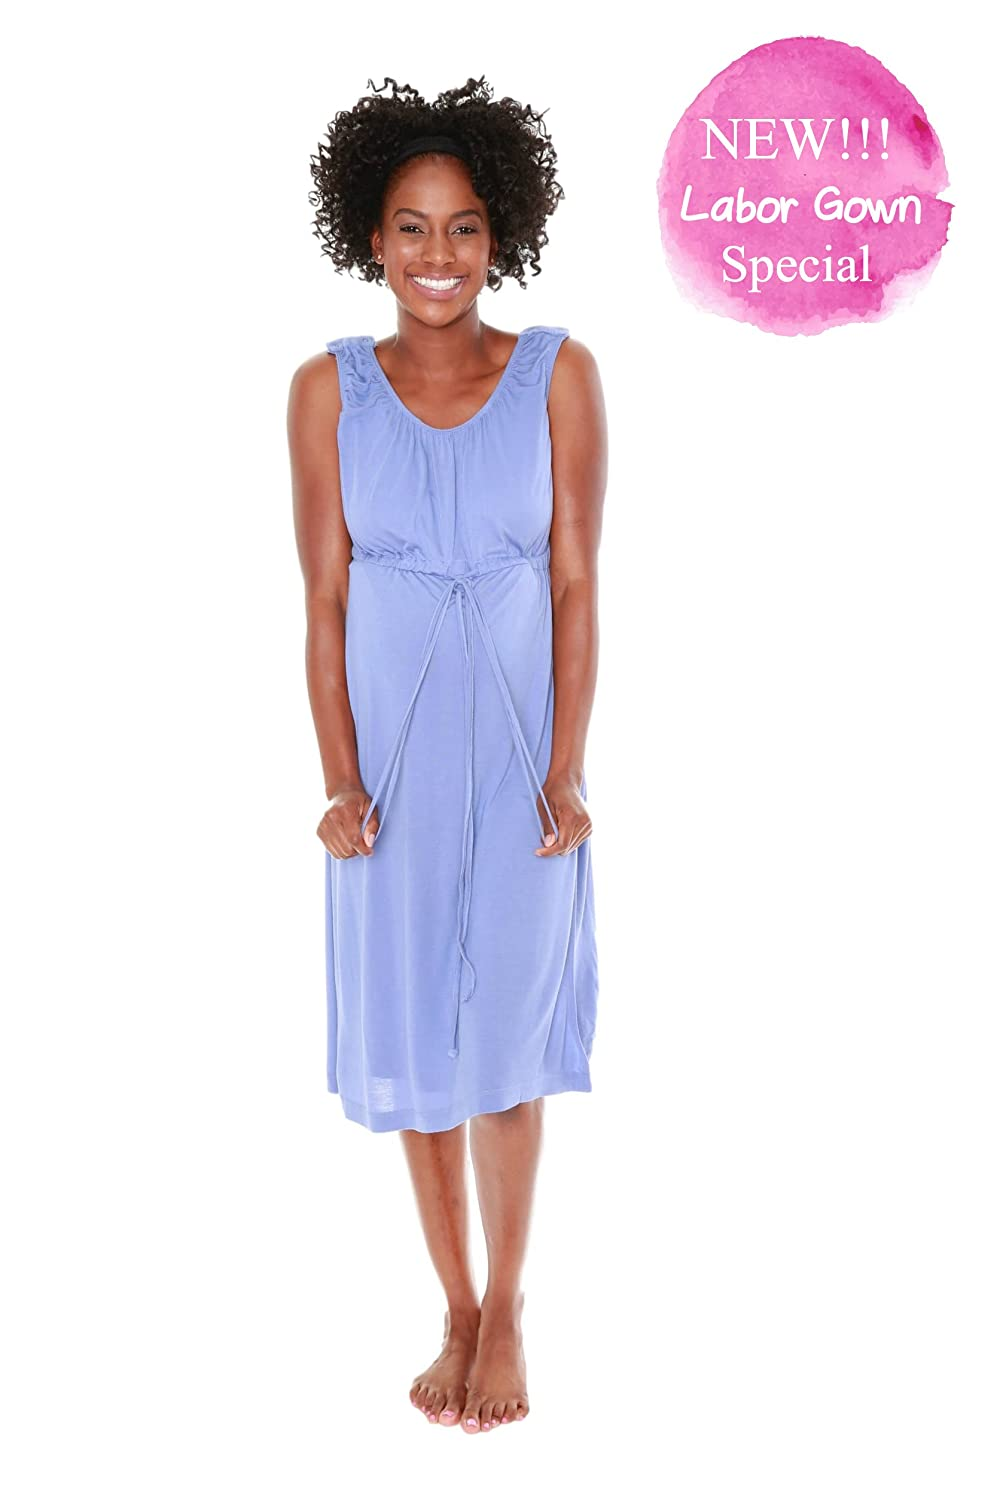 Baby Be Mine 3 in 1 Labor/Delivery/Nursing Hospital Gown Maternity ...